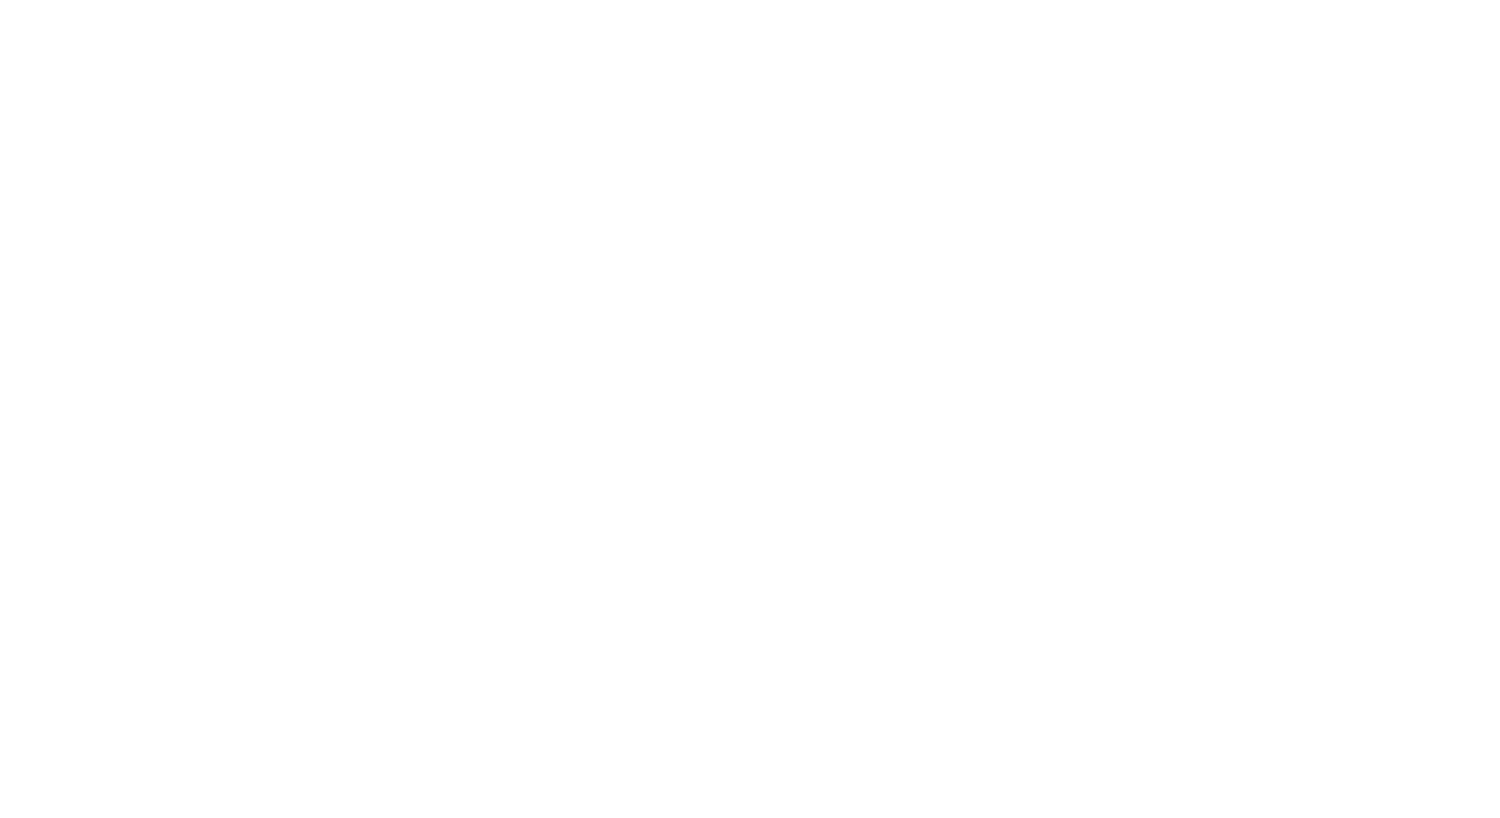 the turkscribe